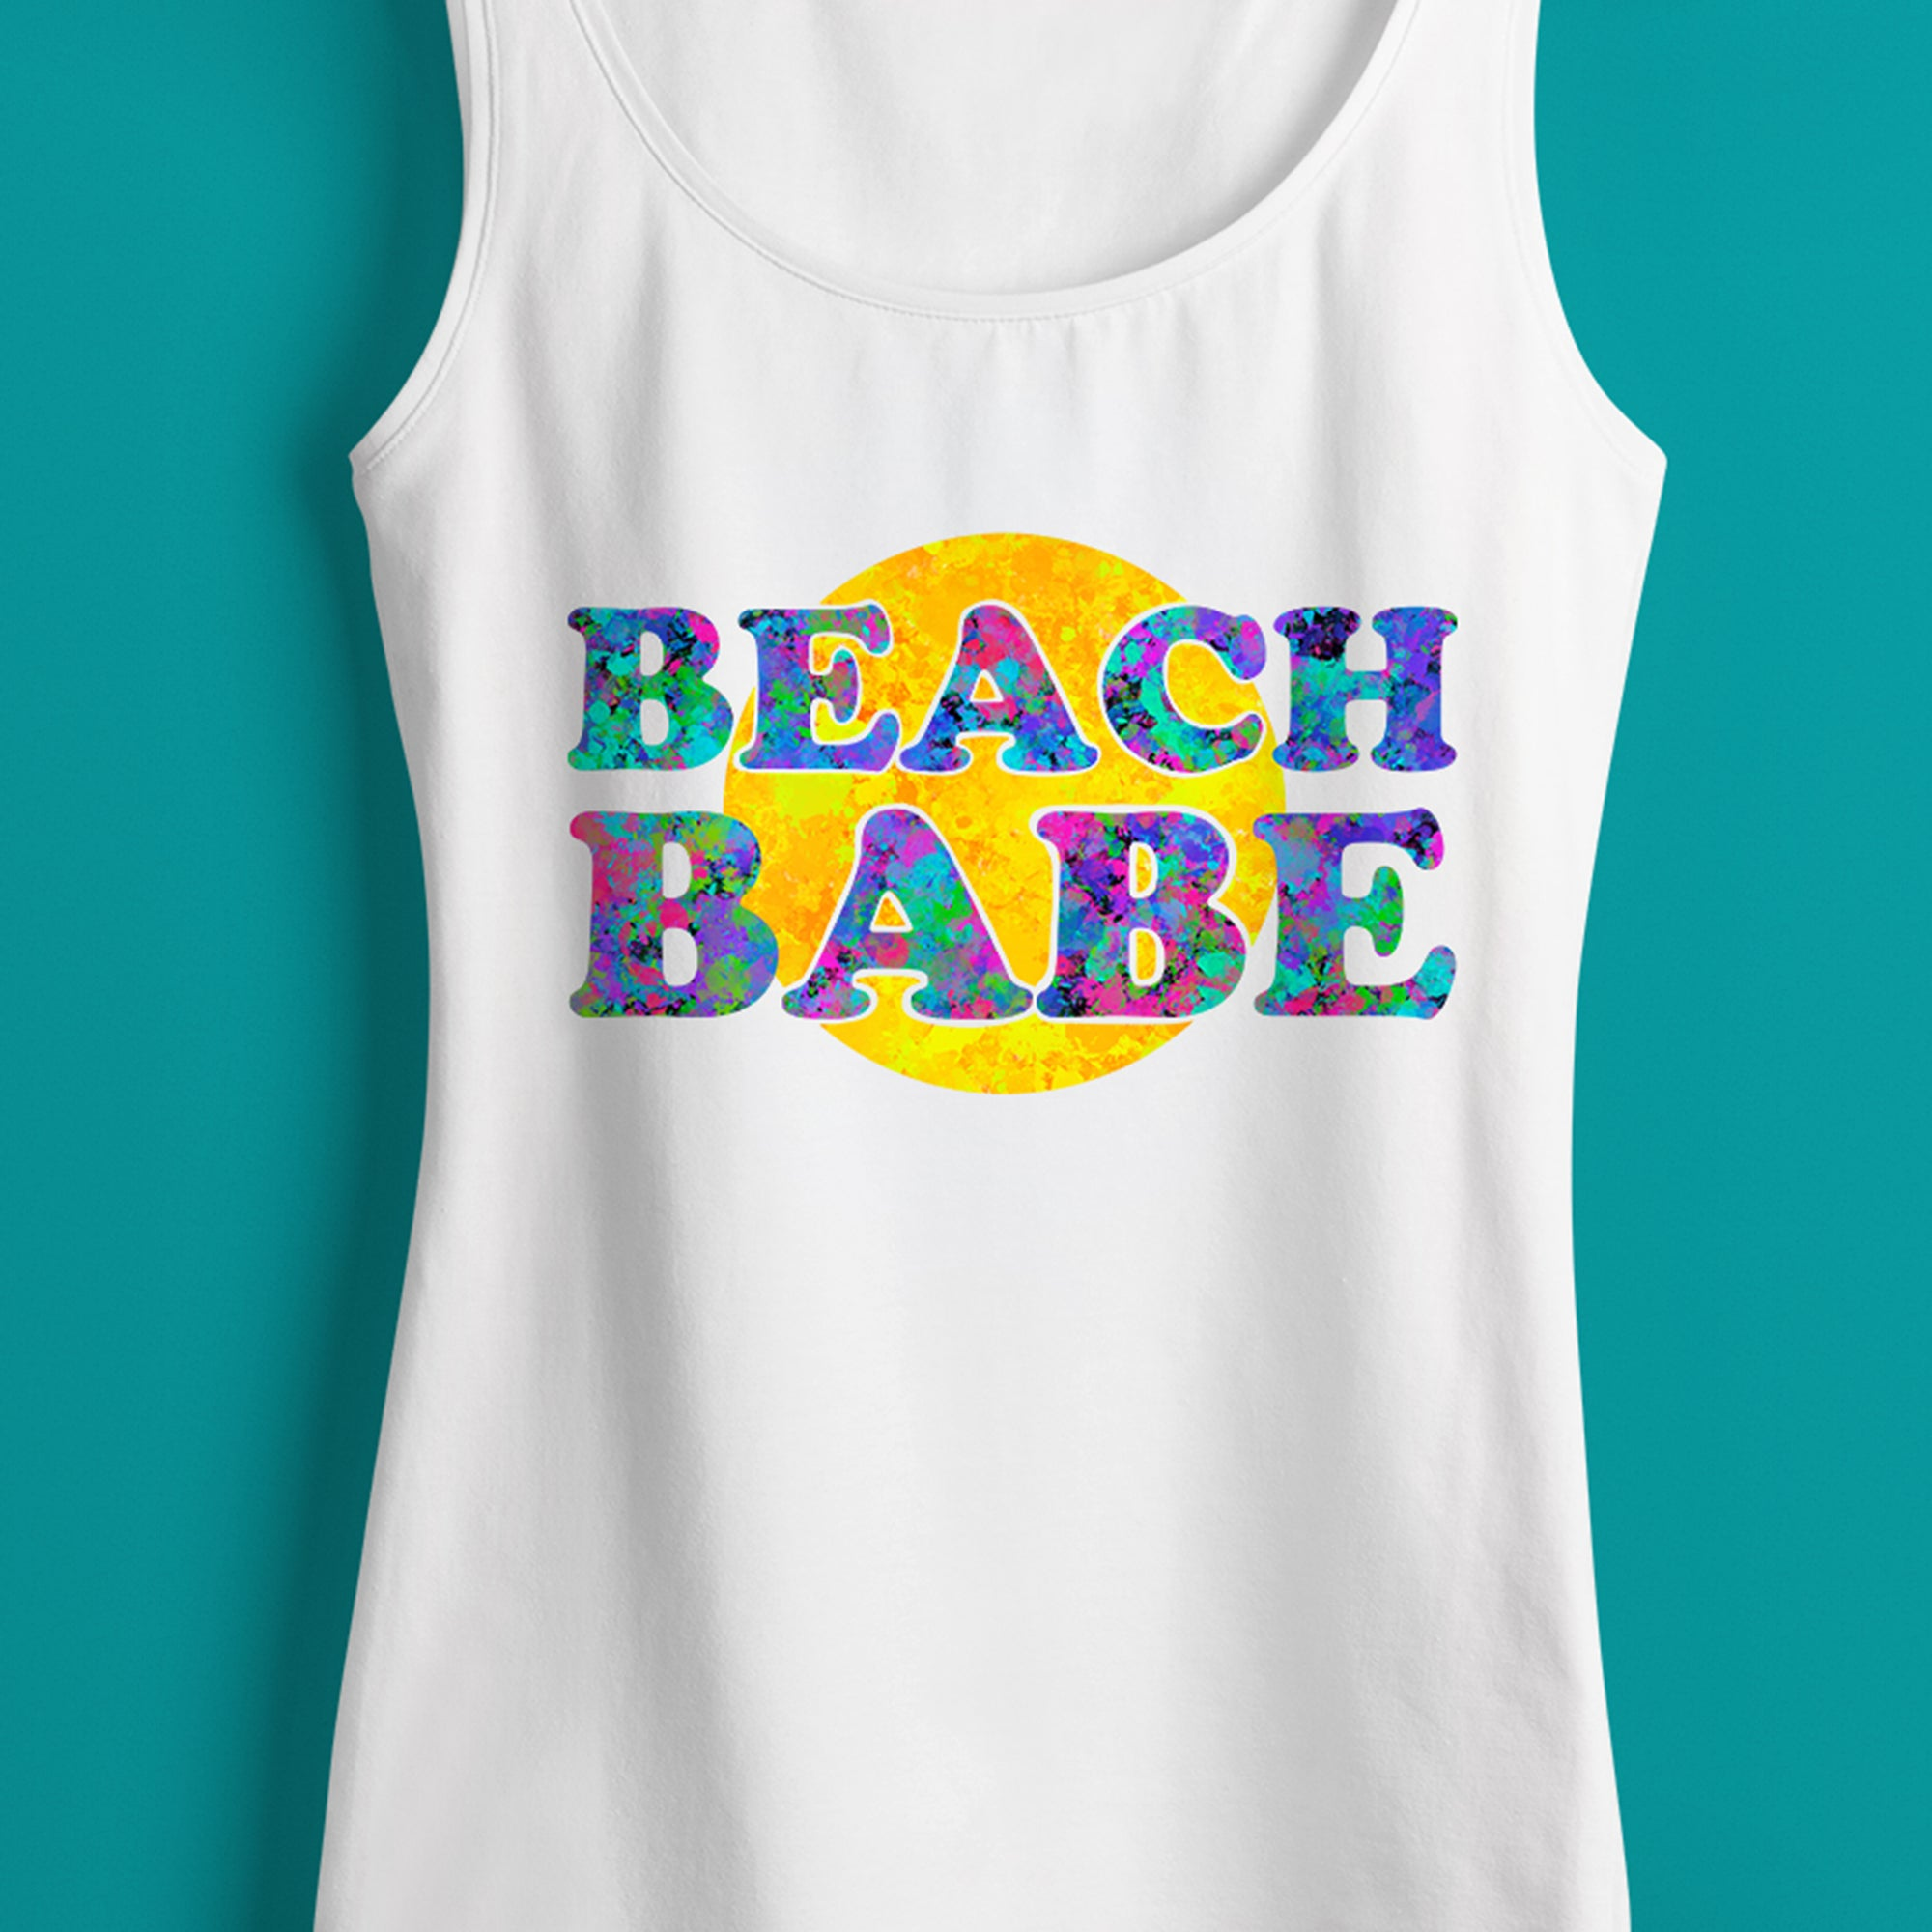 Beach Sublimation Design, Beach Sublimation Digital Download, Beach PNG for Sublimation Printing, Sublimation Design Files, Beach DTG Digital Download